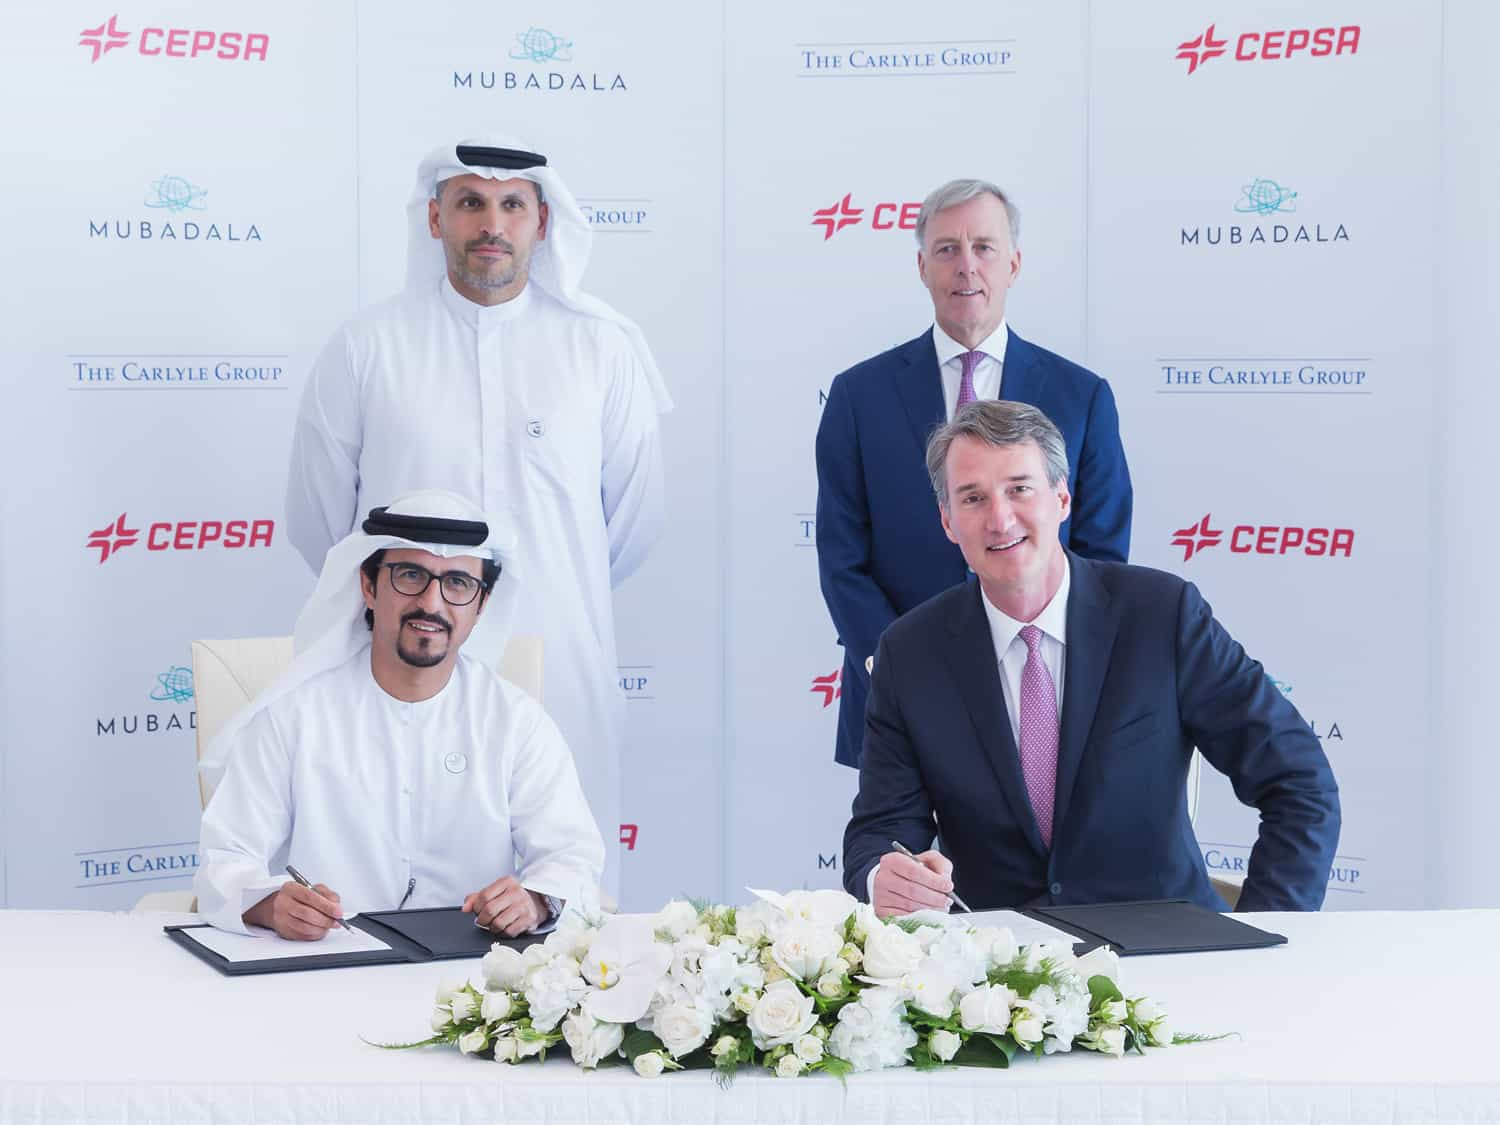 Signing of agreement between Mubadala and Carlyle